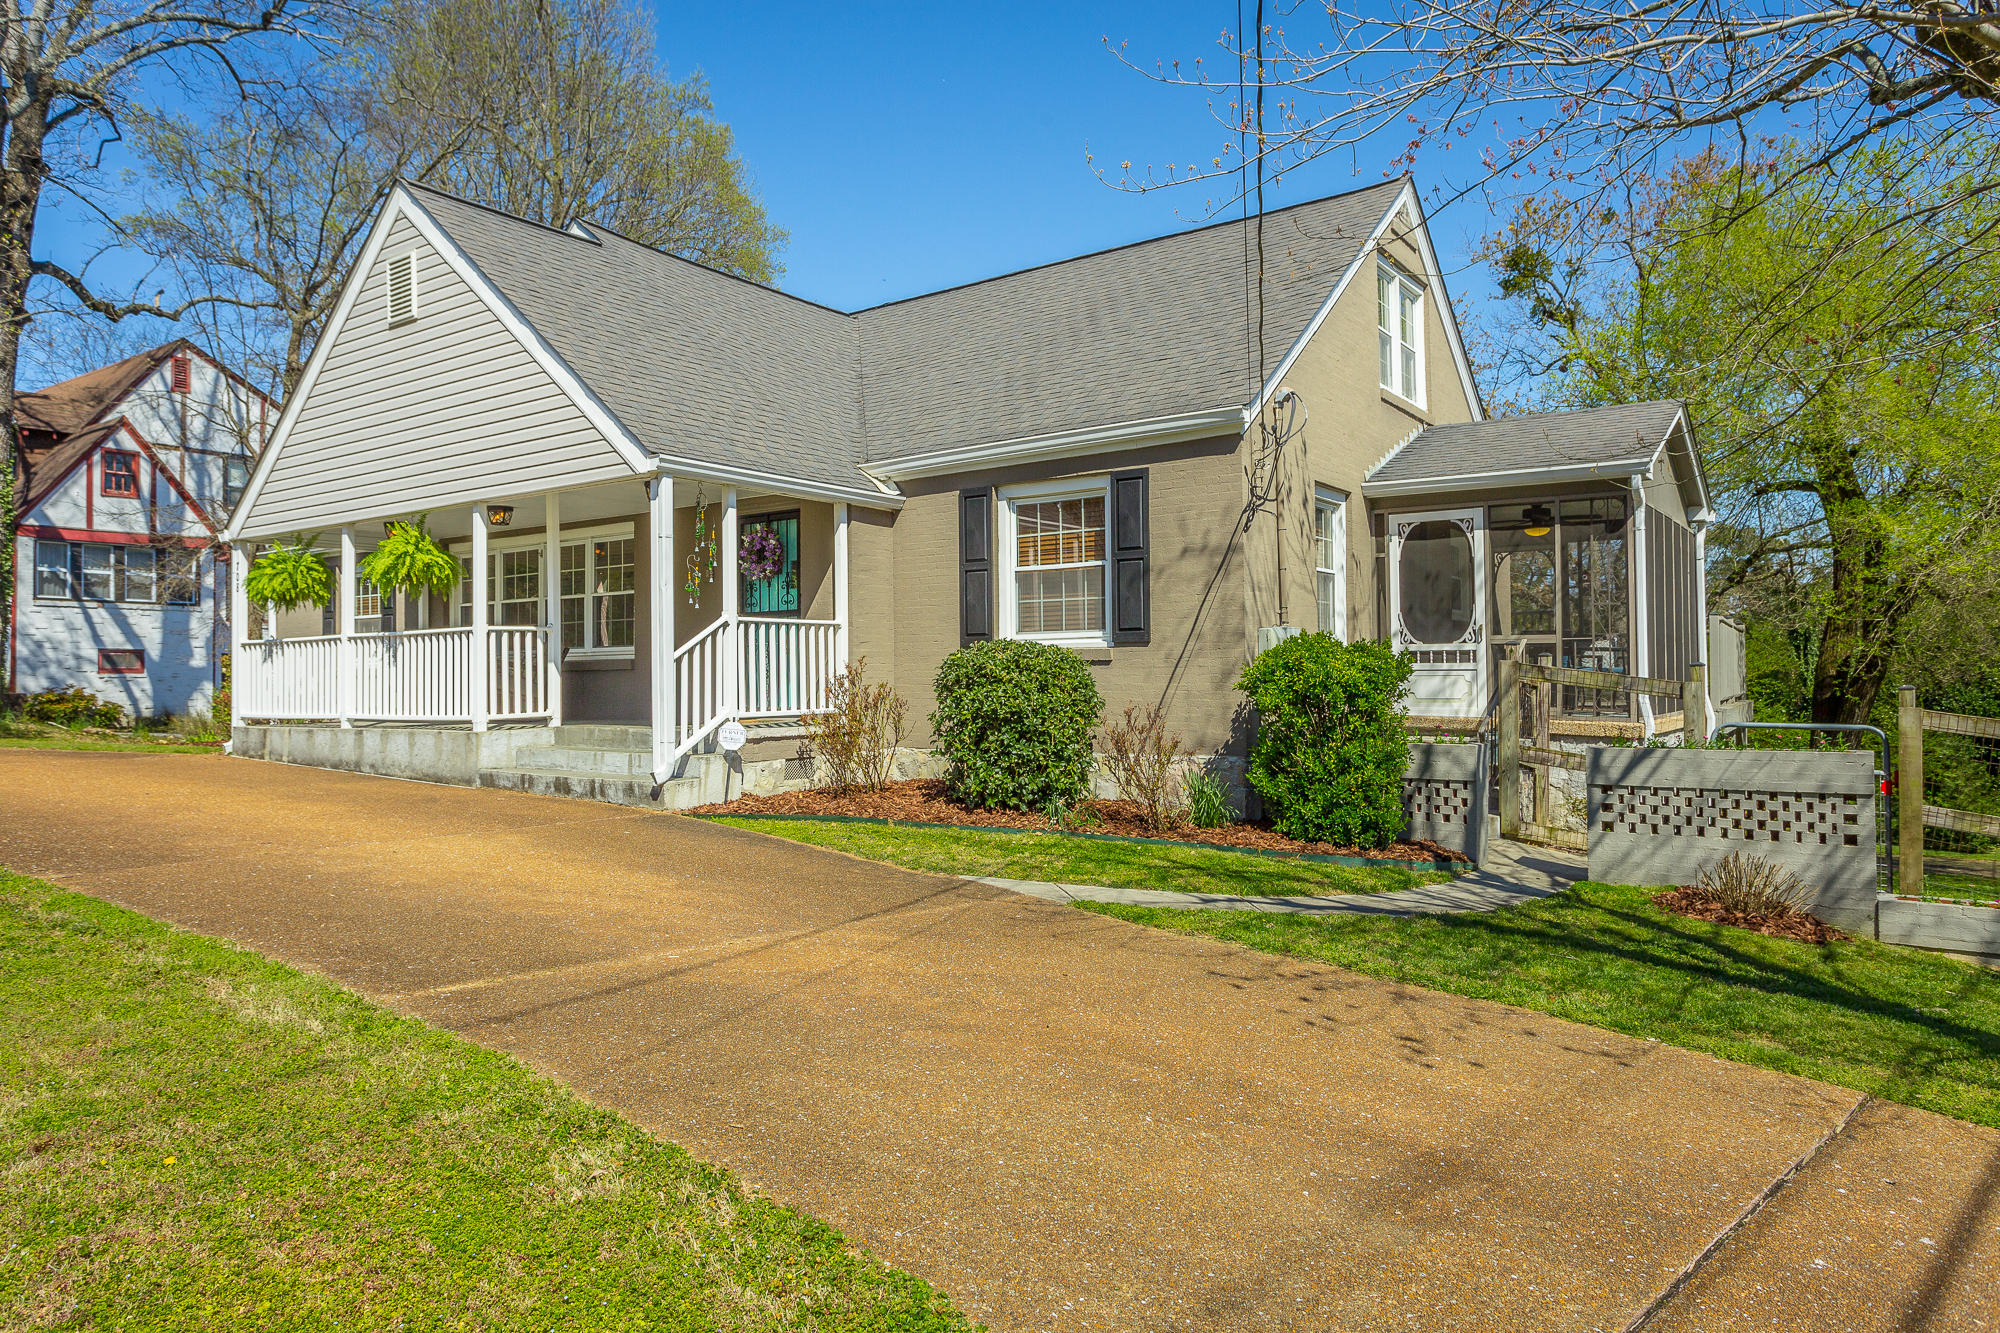 708 Belvoir Ave, Chattanooga, TN 37412